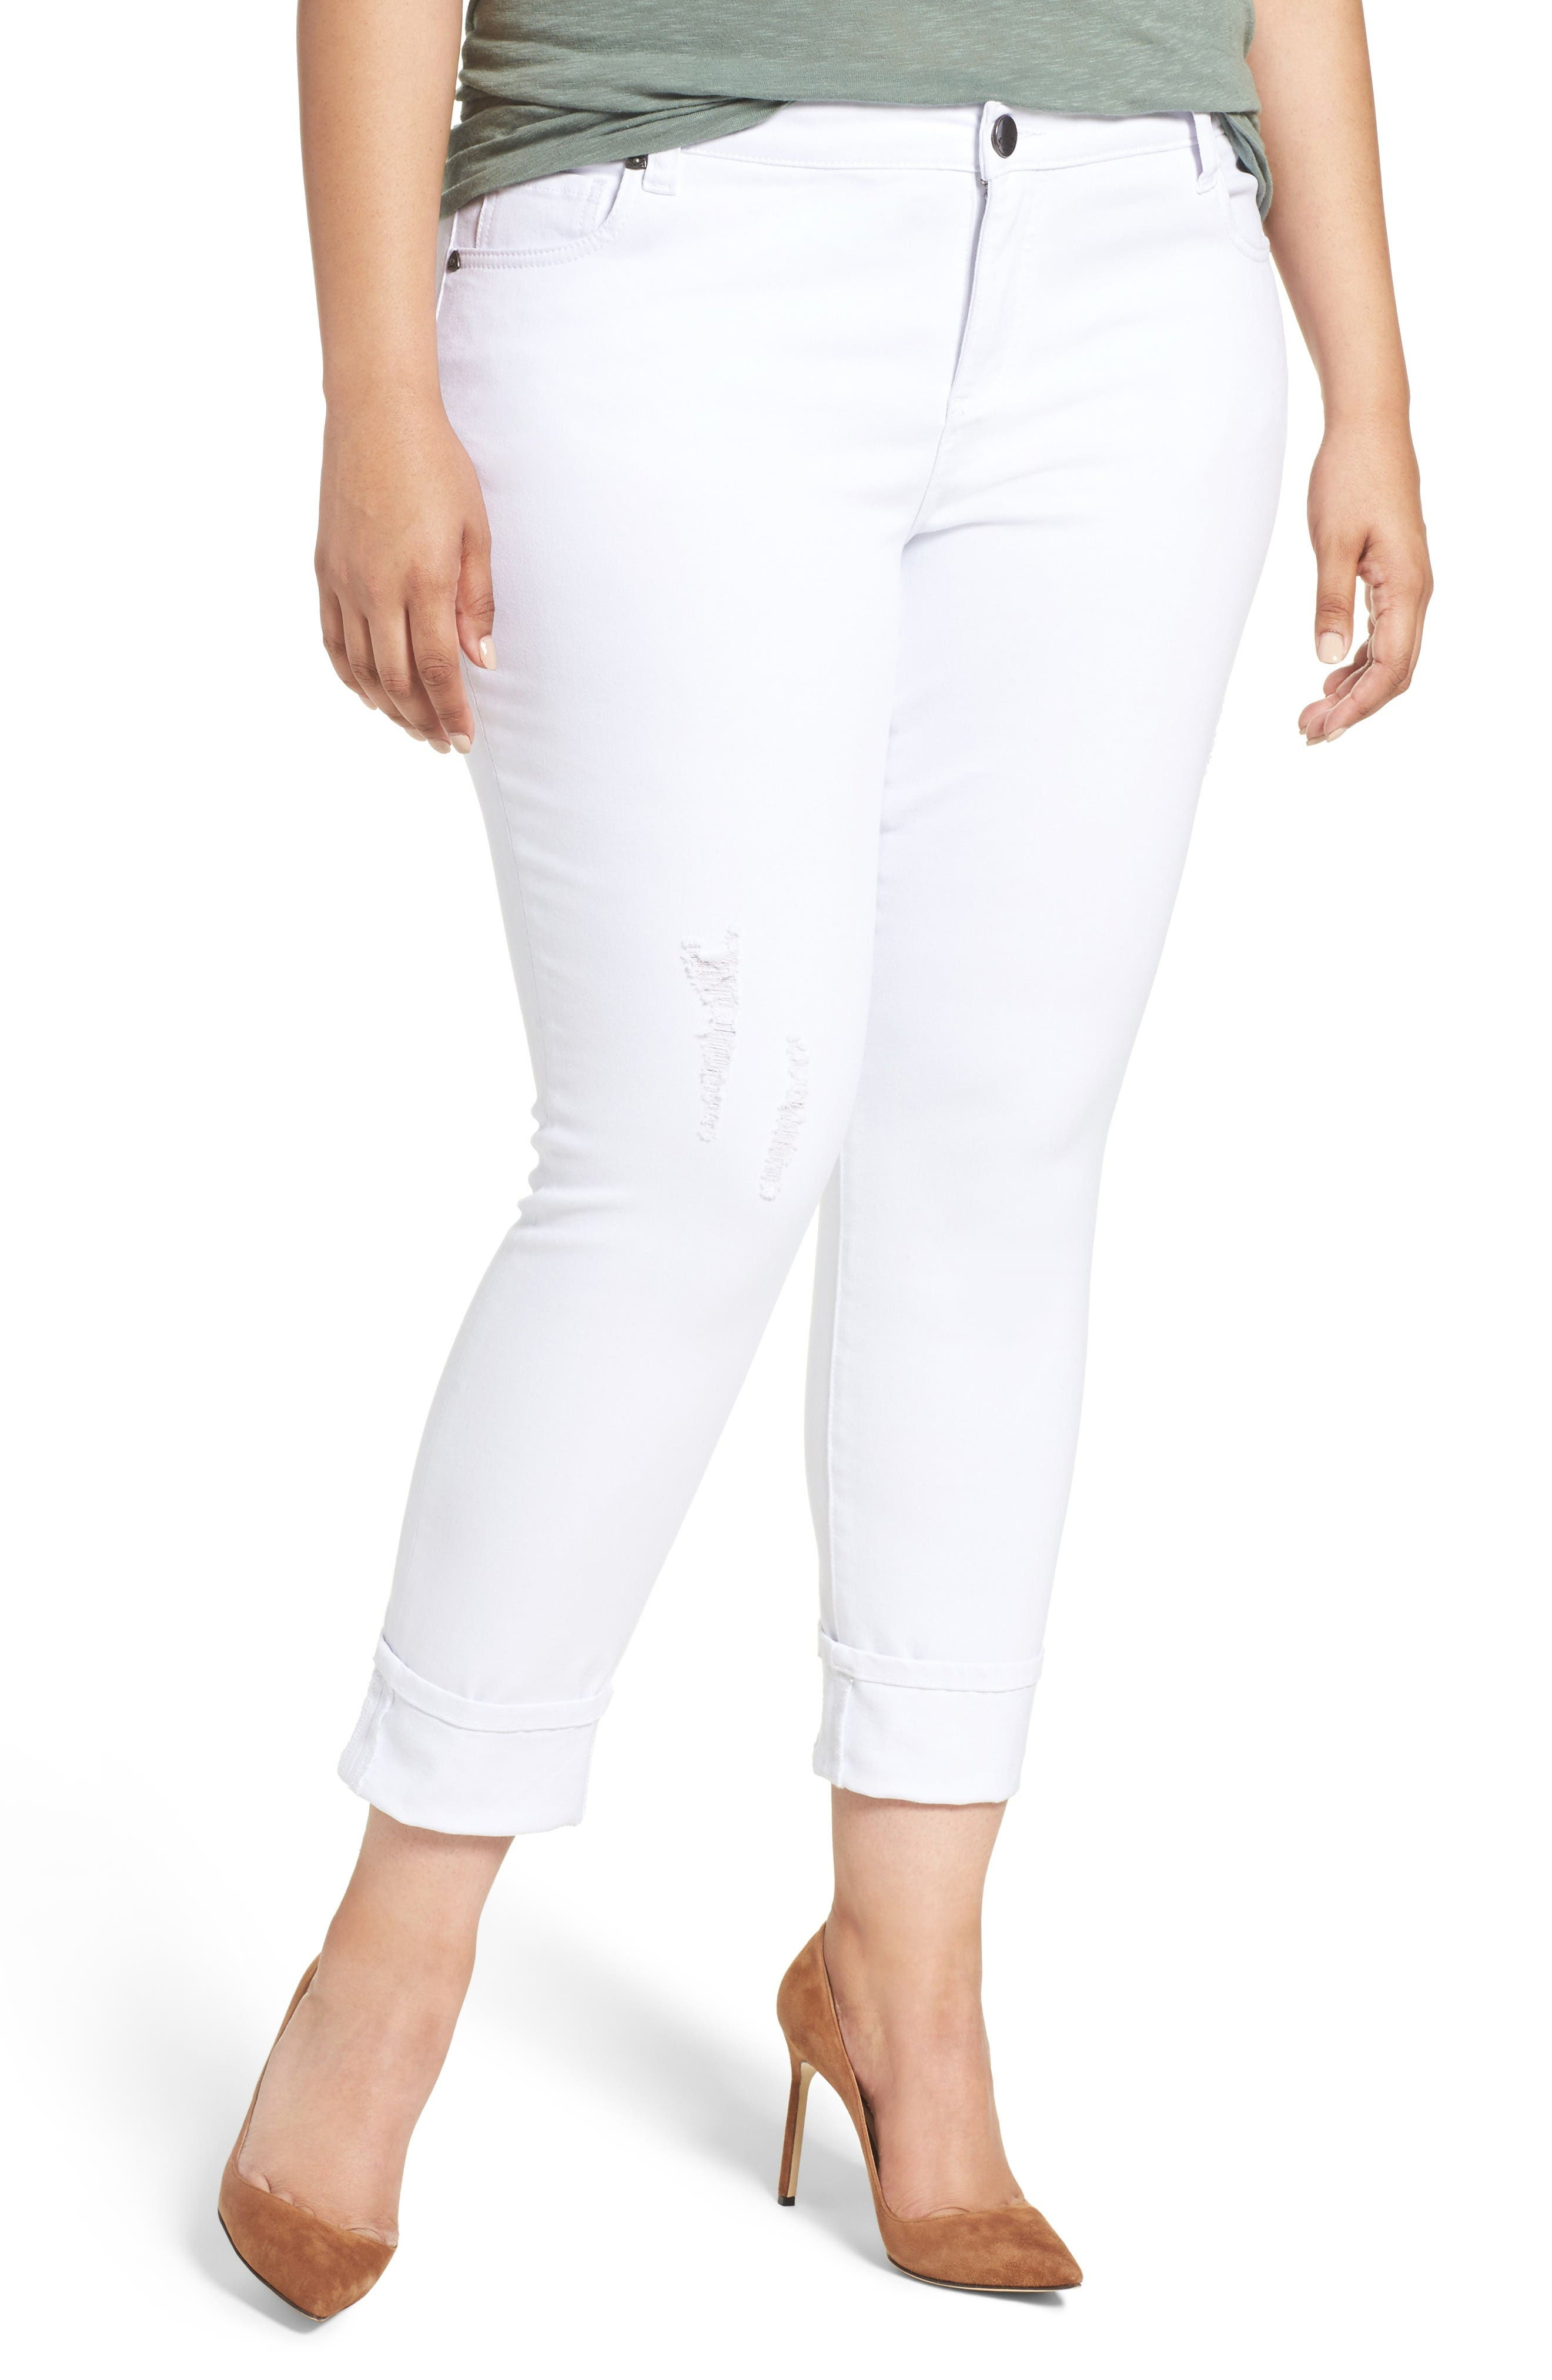 Alternate Image 1 Selected - KUT from the Kloth Catherine Distressed Wide Cuff Boyfriend Jeans (Optic White) (Plus Size)